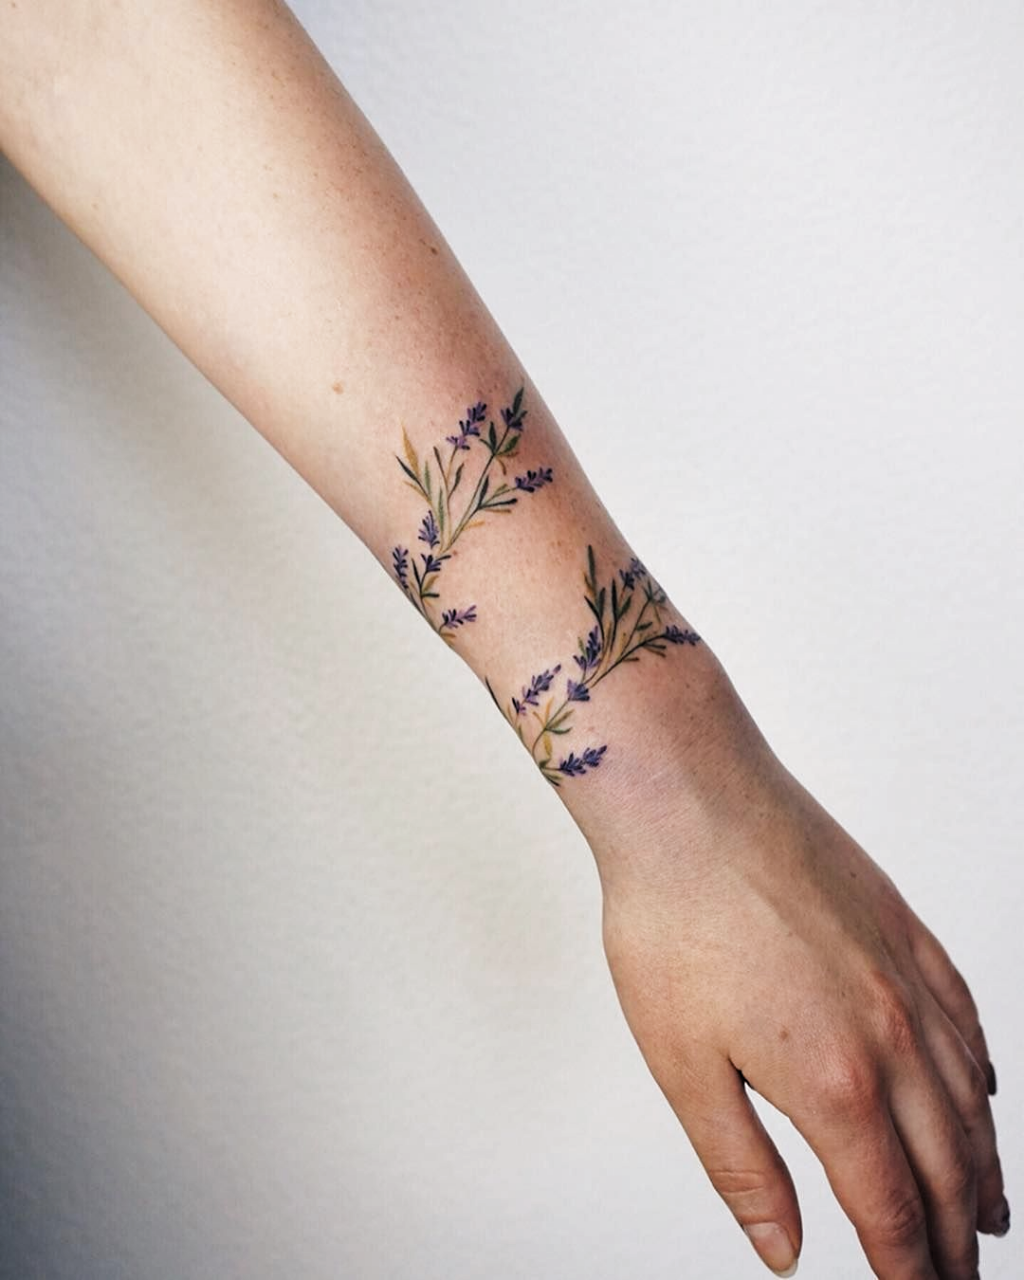 Pin By Jaclyn Bates On Tatoeage In 2020 Lavender Tattoo Wrap Around Wrist Tattoos Wrist Tattoos For Guys